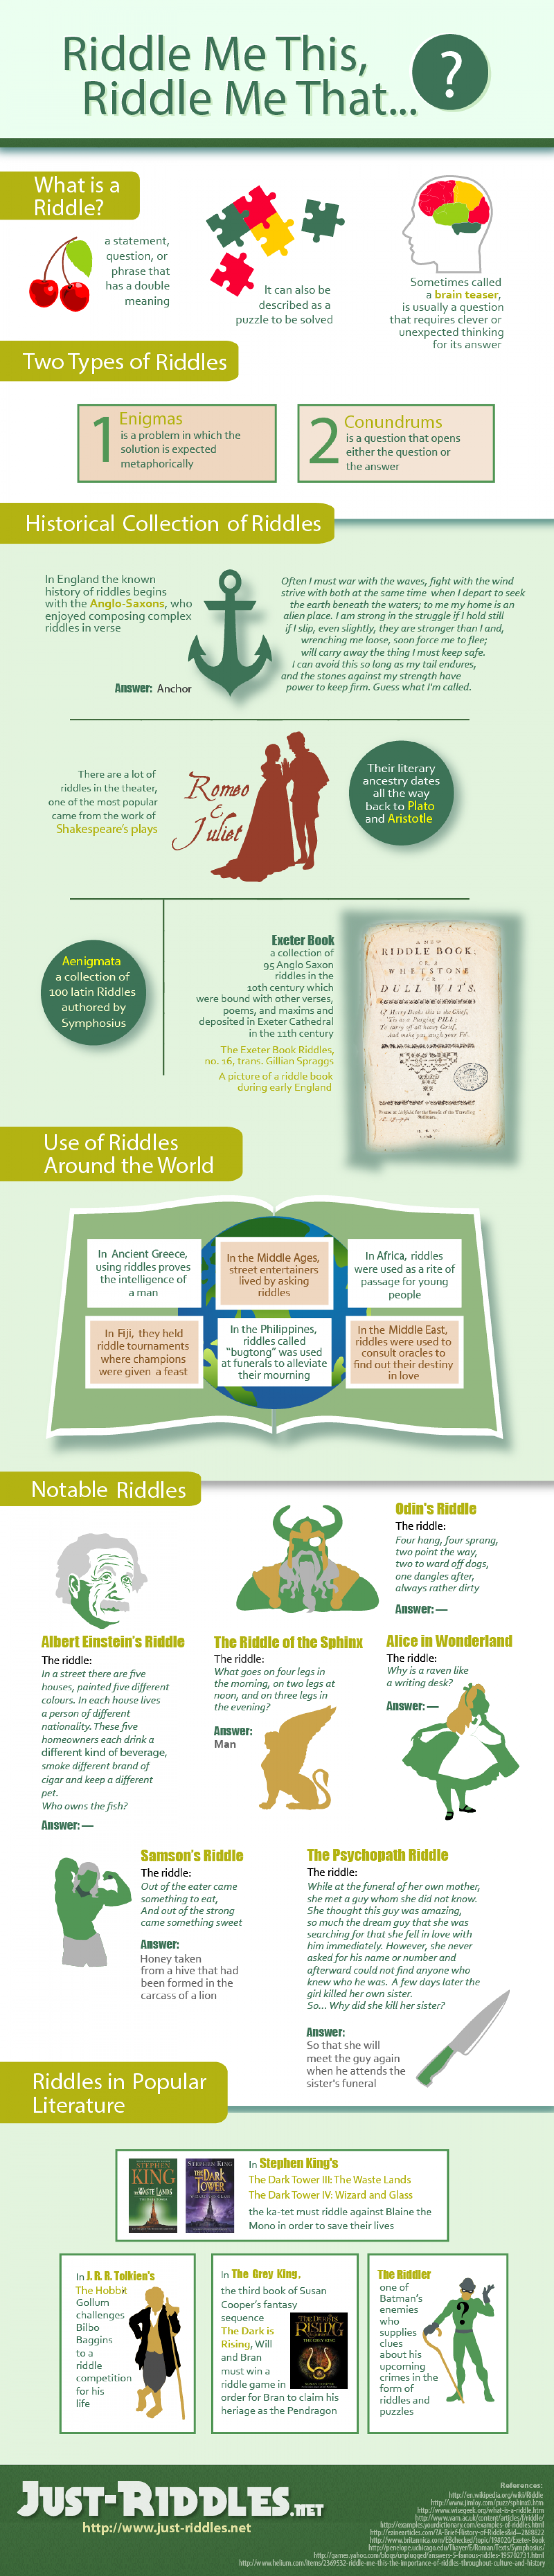 Riddle Me This, Riddle Me That... Infographic